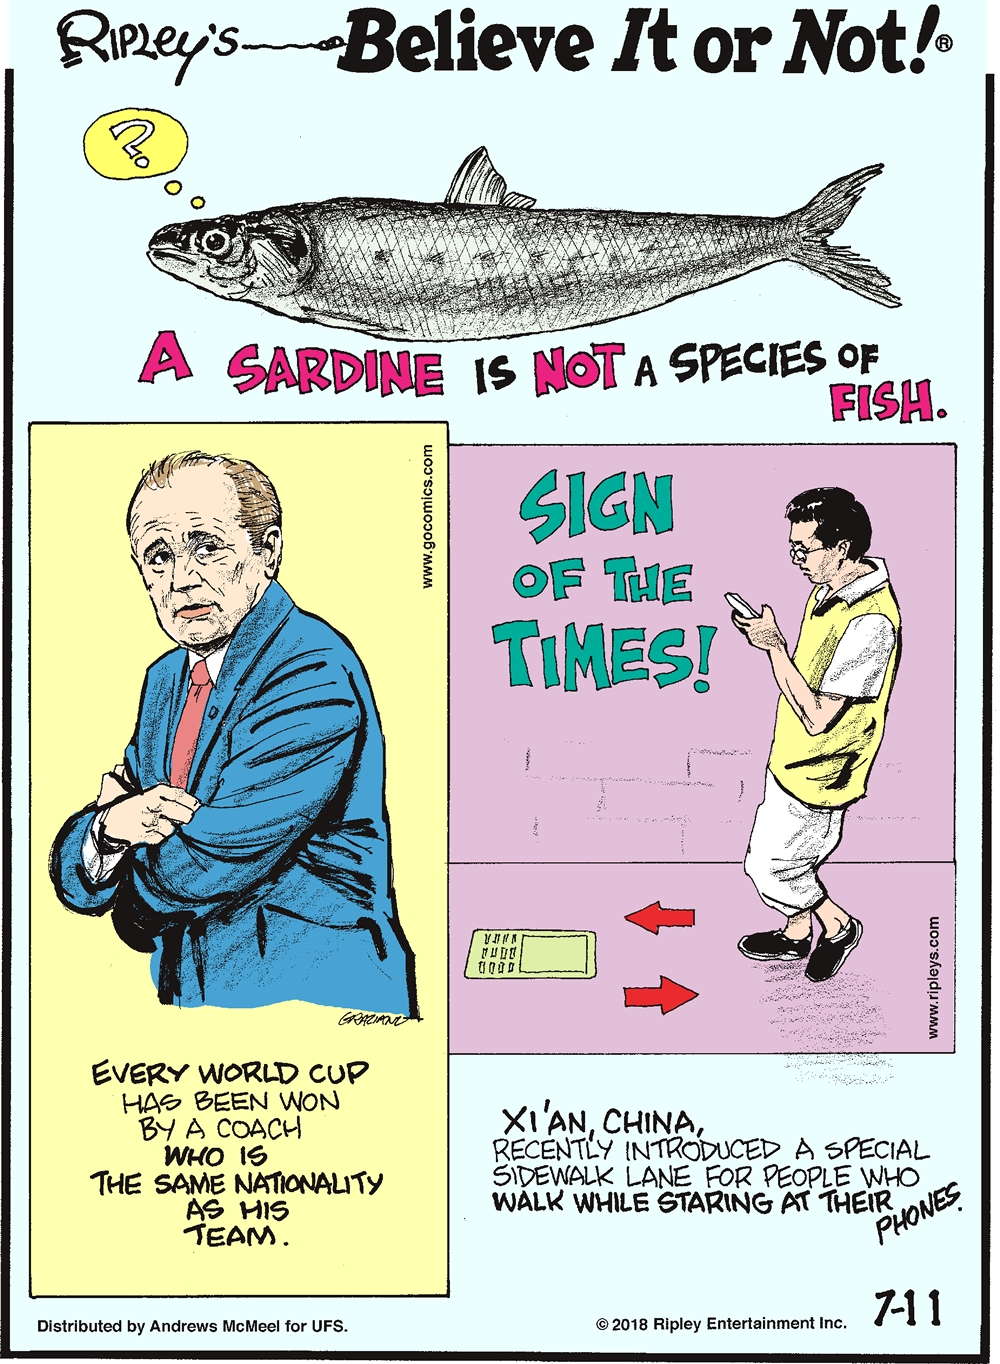 A sardine is not a species of fish.-------------------- Every World Cup has been won by a coach who is the same nationality as his team.-------------------- Xi'an, China, recently introduced a special sidewalk lane for people who walk while staring at their phones.